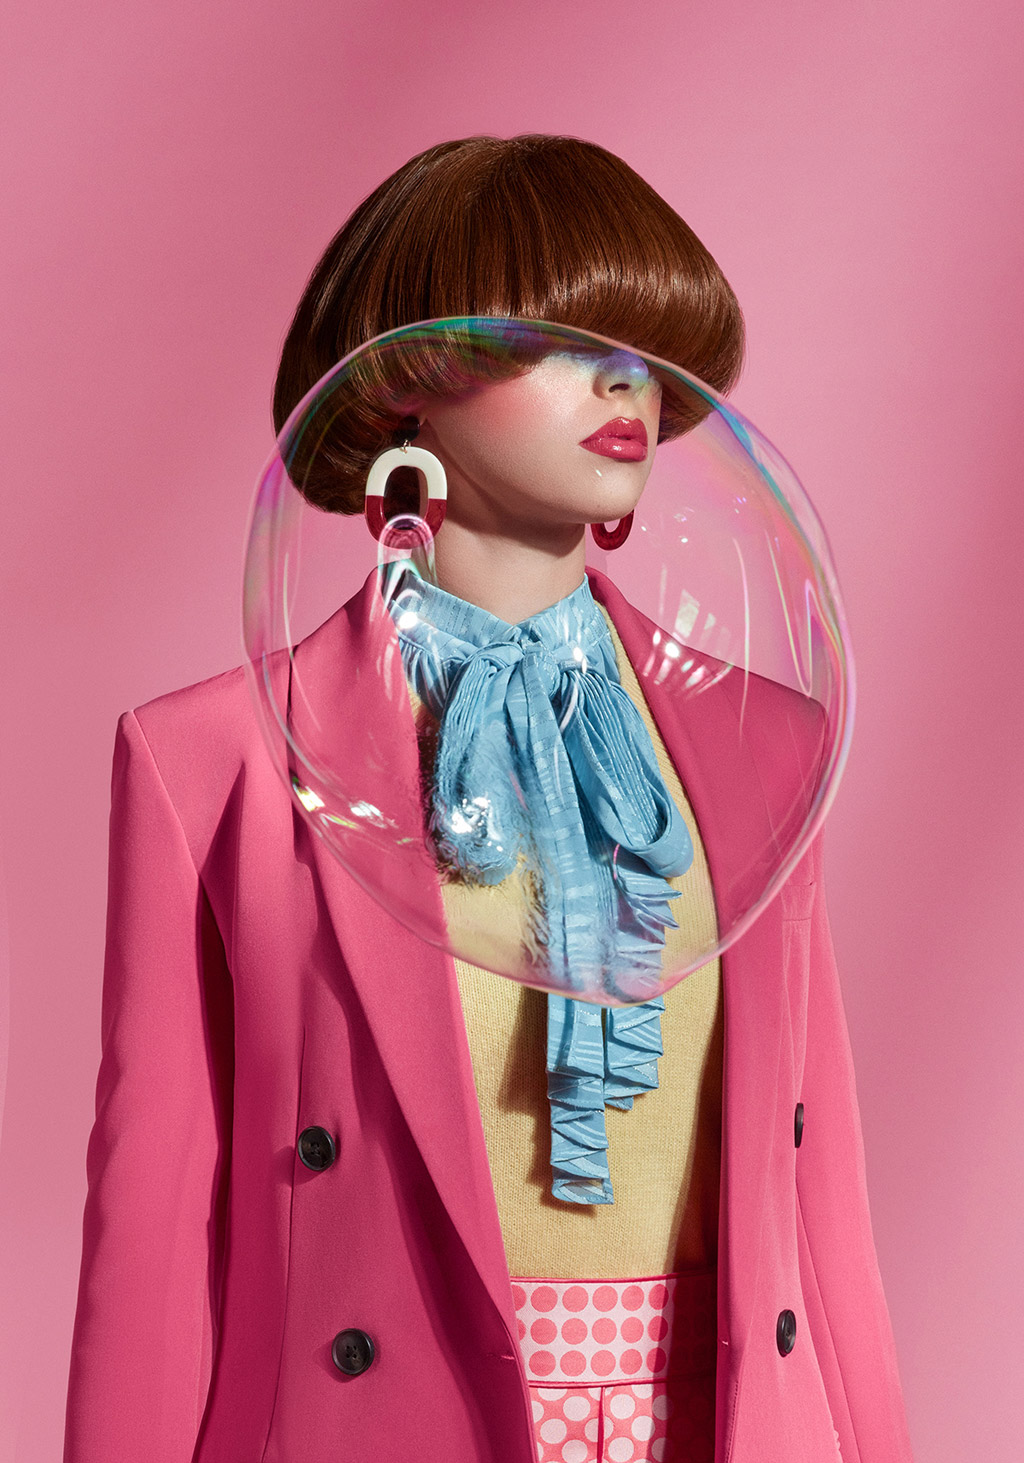 fashion photography girl bubble by ahmed othman